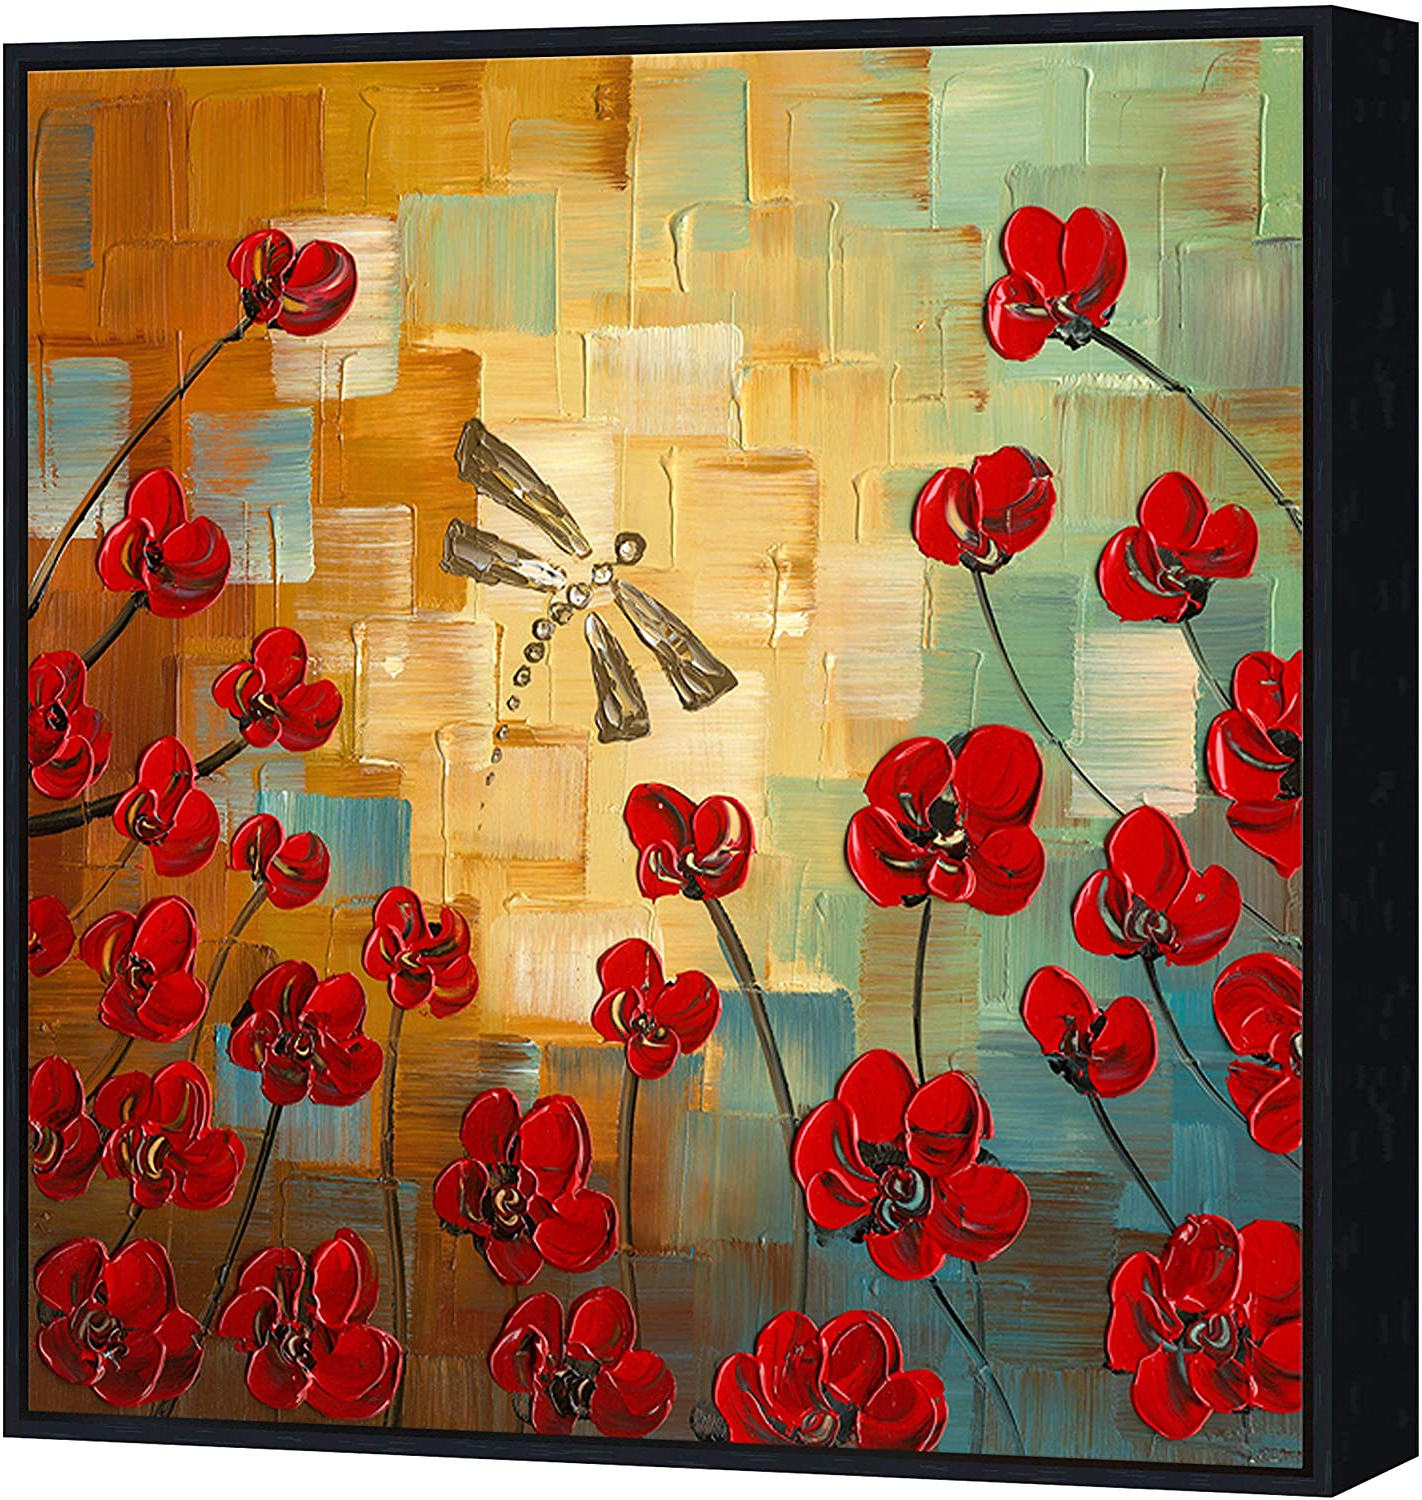 [%wieco Art Framed Art Dragonfly Floral Oil Paintings On Canvas Wall Art For Bedroom Home Decorations Modern 100% Hand Painted Stretched Abstract Throughout Most Up To Date Blended Fabric Poppy Red Wall Hangings|blended Fabric Poppy Red Wall Hangings Regarding 2019 Wieco Art Framed Art Dragonfly Floral Oil Paintings On Canvas Wall Art For Bedroom Home Decorations Modern 100% Hand Painted Stretched Abstract|most Recently Released Blended Fabric Poppy Red Wall Hangings Throughout Wieco Art Framed Art Dragonfly Floral Oil Paintings On Canvas Wall Art For Bedroom Home Decorations Modern 100% Hand Painted Stretched Abstract|favorite Wieco Art Framed Art Dragonfly Floral Oil Paintings On Canvas Wall Art For Bedroom Home Decorations Modern 100% Hand Painted Stretched Abstract Regarding Blended Fabric Poppy Red Wall Hangings%] (View 15 of 20)